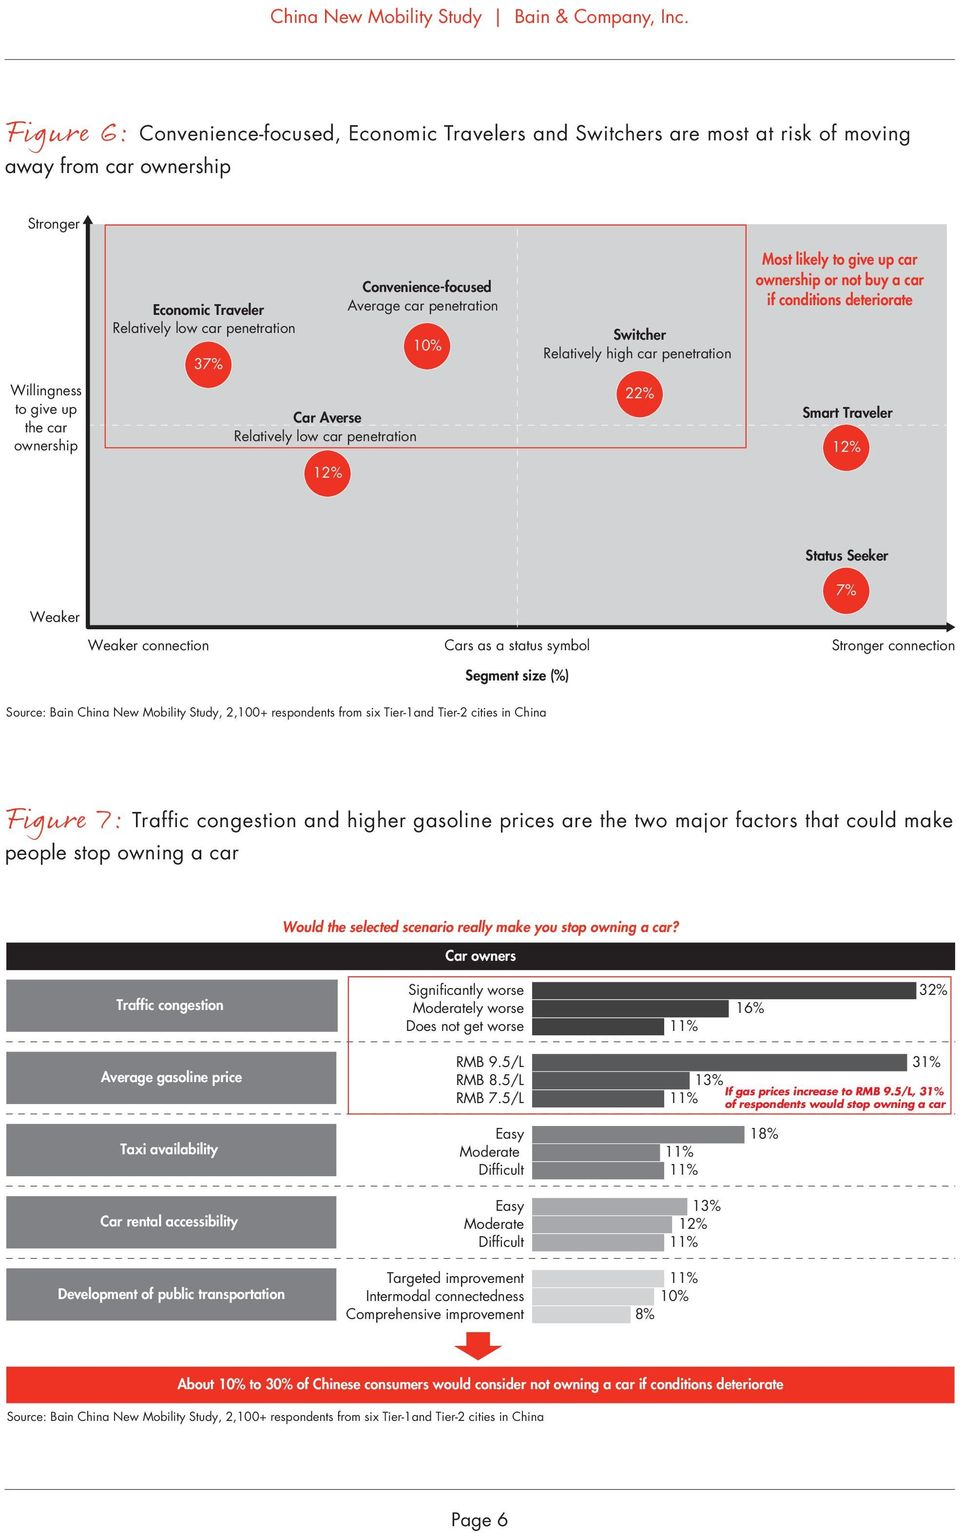 Smart 12% 12% Status Seeker 7% Weaker Weaker connection Cars as a status symbol Segment size (%) Stronger connection Source: Bain China New Mobility Study, 2,1+ respondents from six Tier-1and Tier-2